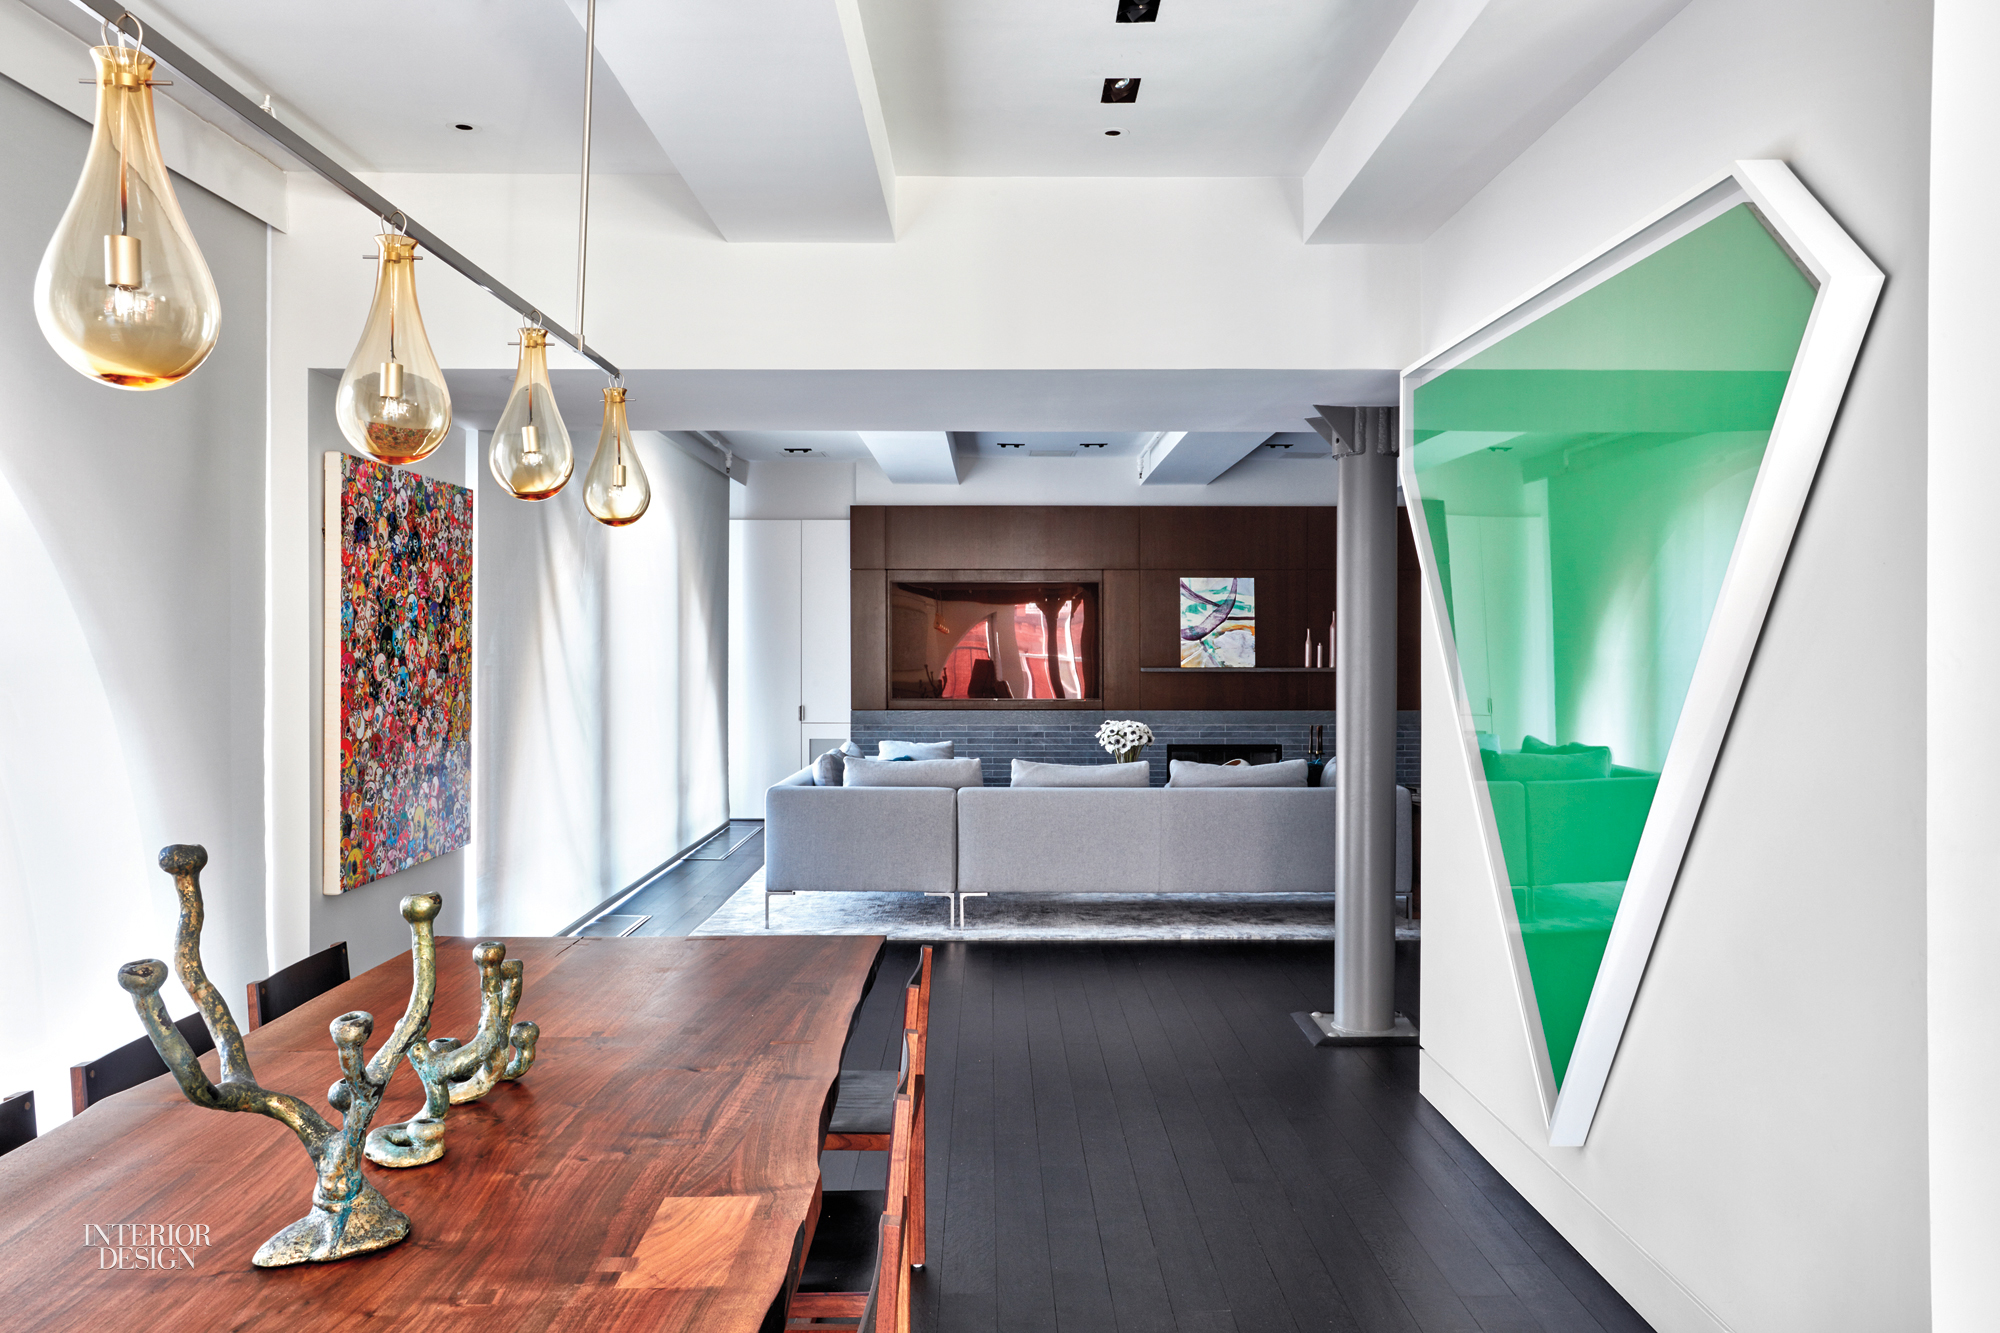 Illuminazione Kohler Tribeca Renovation By Damon Liss And Wunderground Makes Room For Play